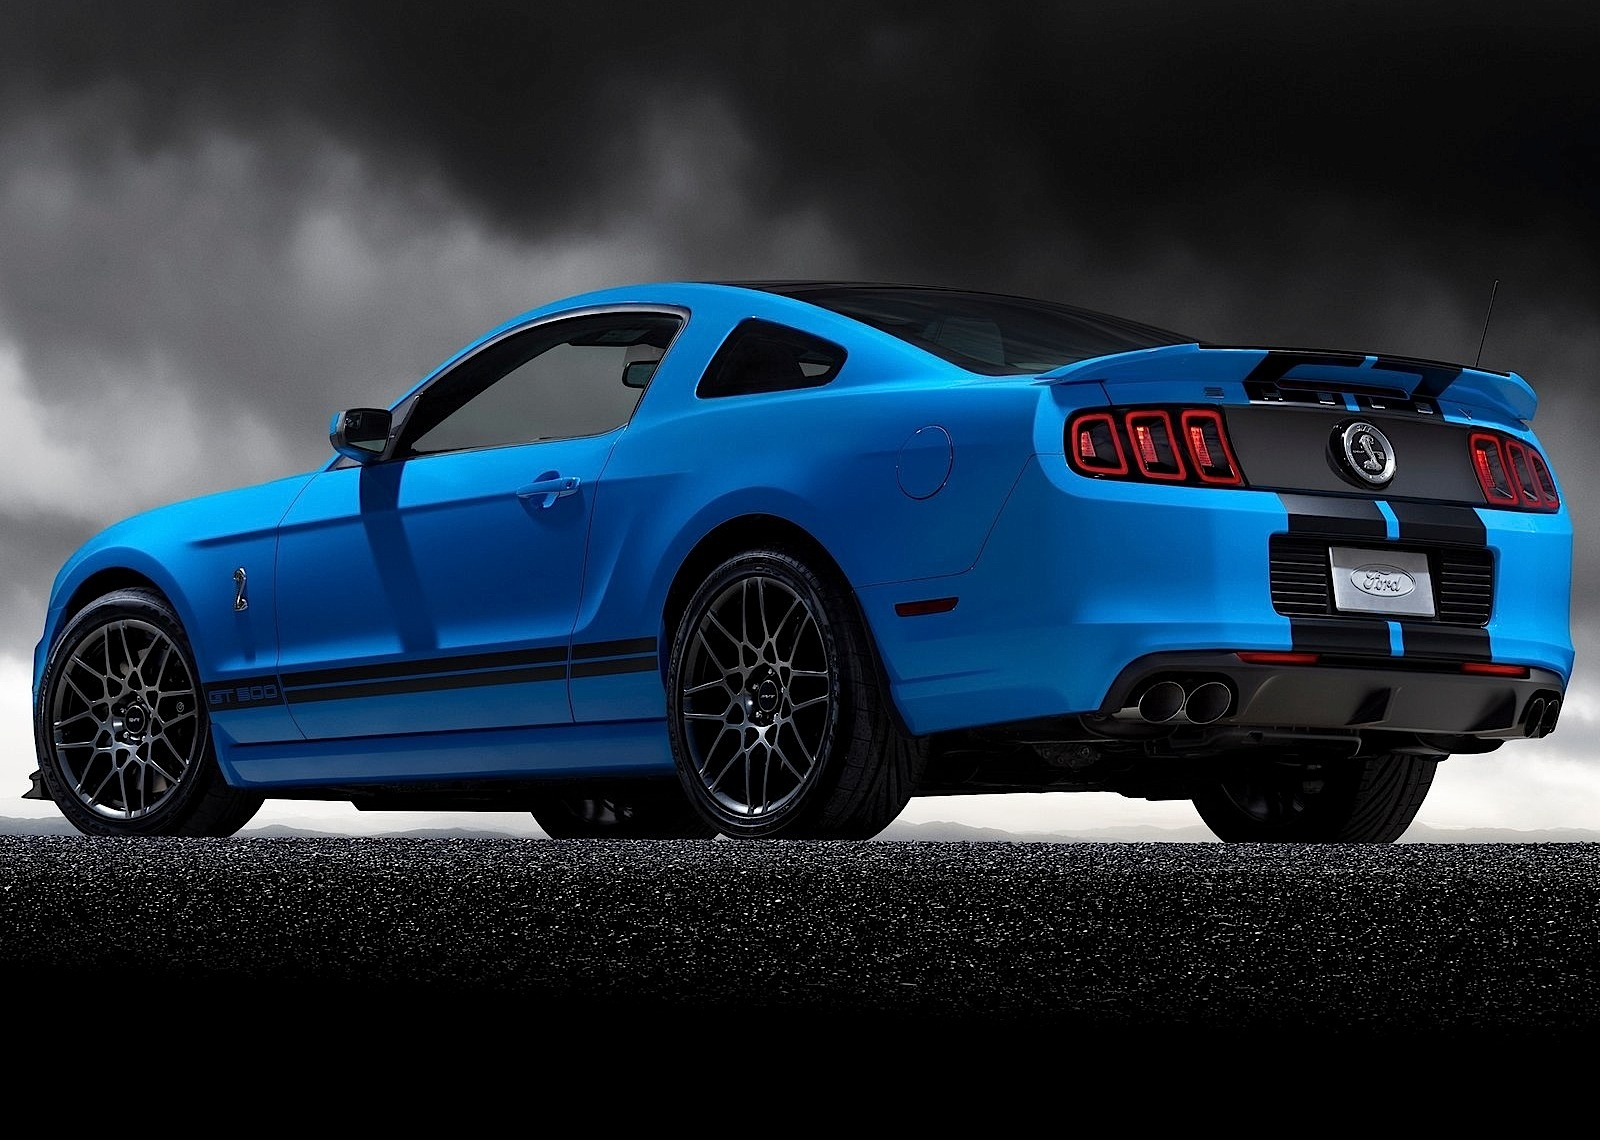 ford mustang shelby gt500 specs photos 2012 2013 2014 2015 2016 2017 2018 2019. Black Bedroom Furniture Sets. Home Design Ideas